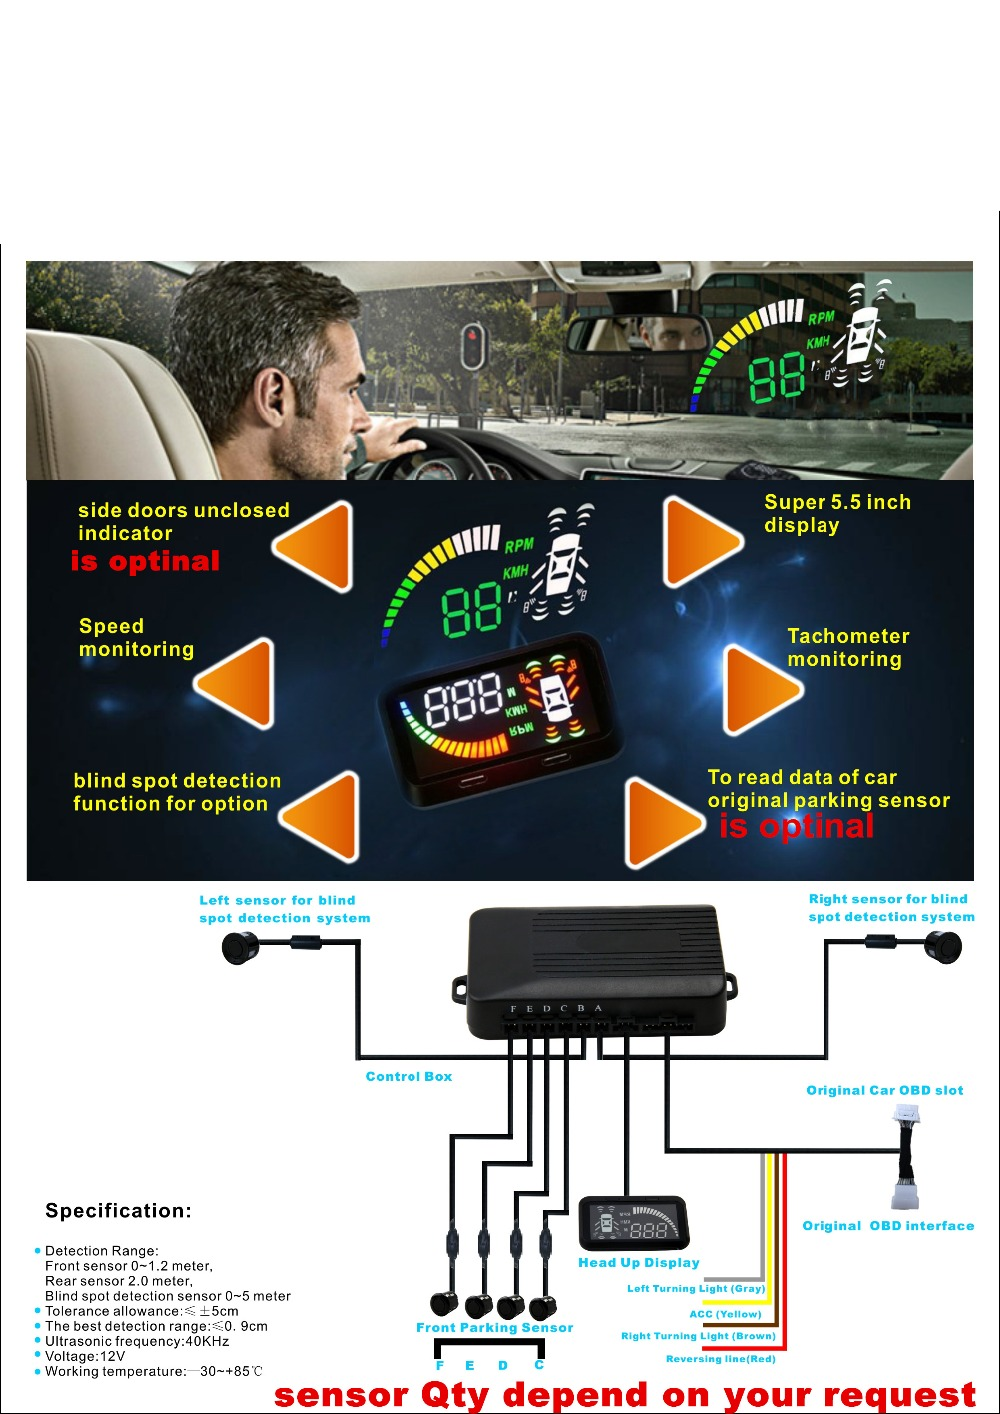 parktronic hud car blind spot detector parking assistant 5.5 HUD OBD II head up +2 BSA sensor +4 back radar 2 front sensor geyiren x5 avtomobilej head up displej 3 djujmov hud avtomobilja obd ii vozhdenie avtomobilja skorost preduprezhdenie jelektronnyj budilnik naprjazhenie vetrovogo stekla proektor